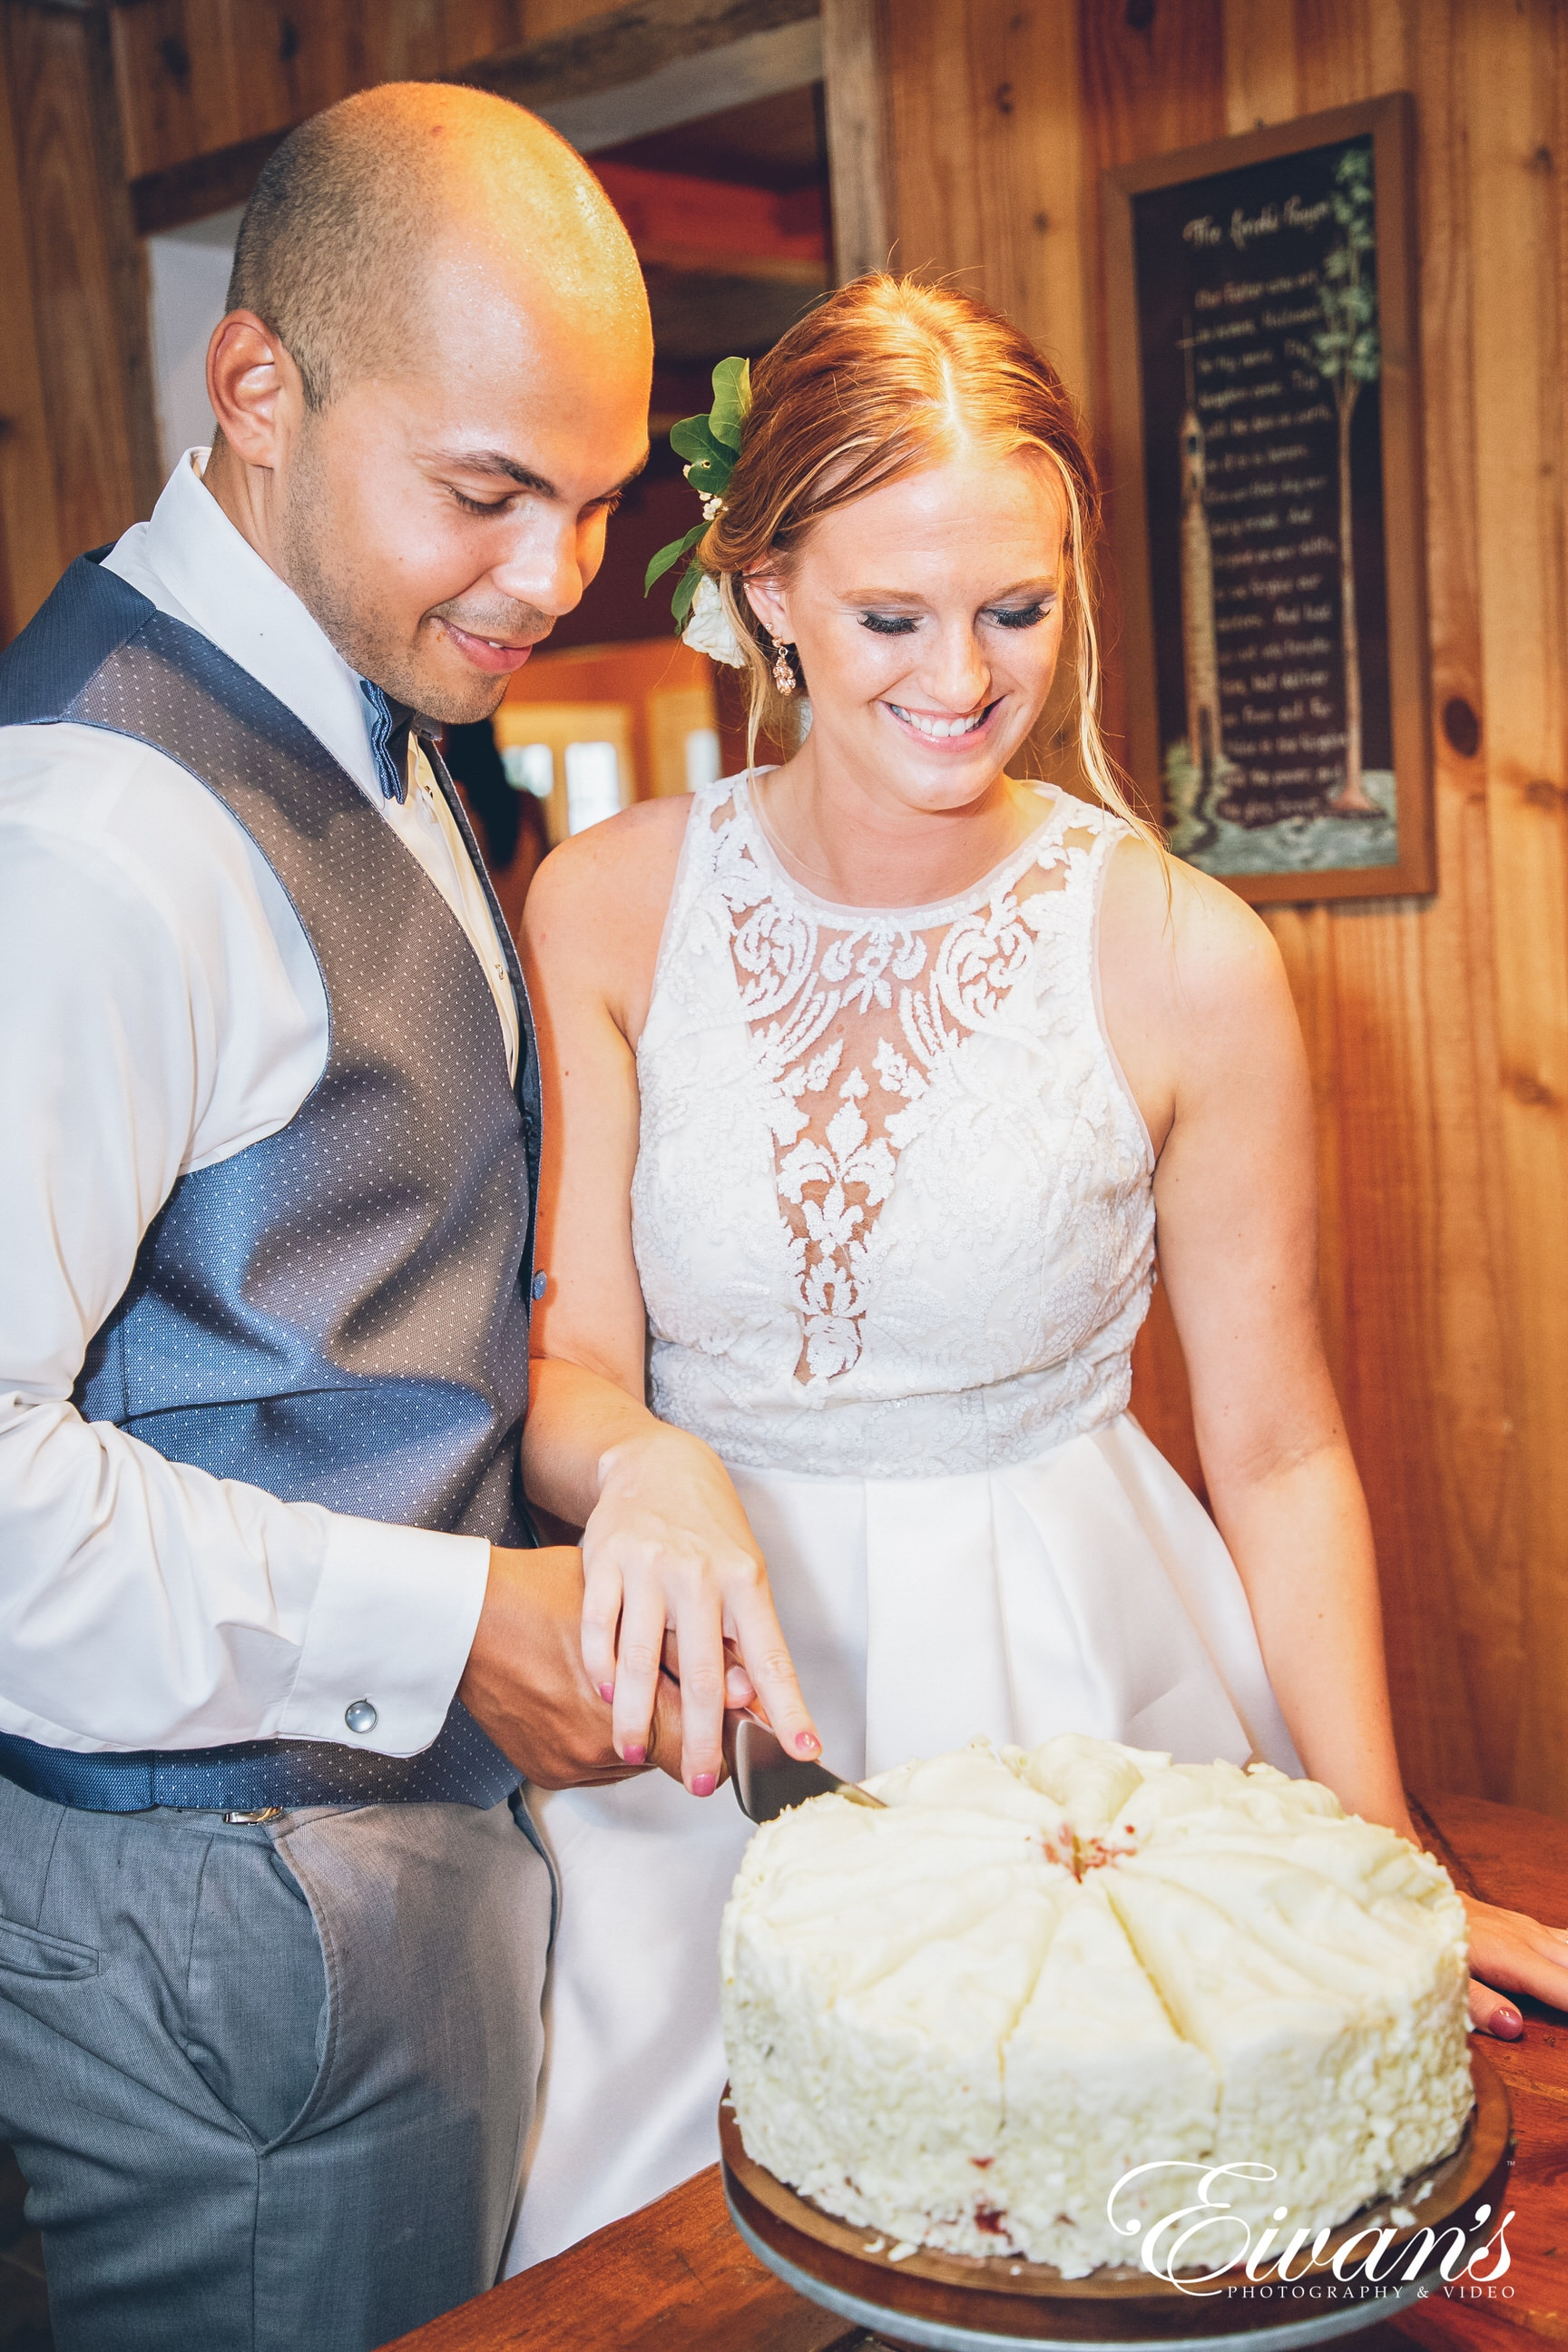 man and woman in a white dress cutting a cake